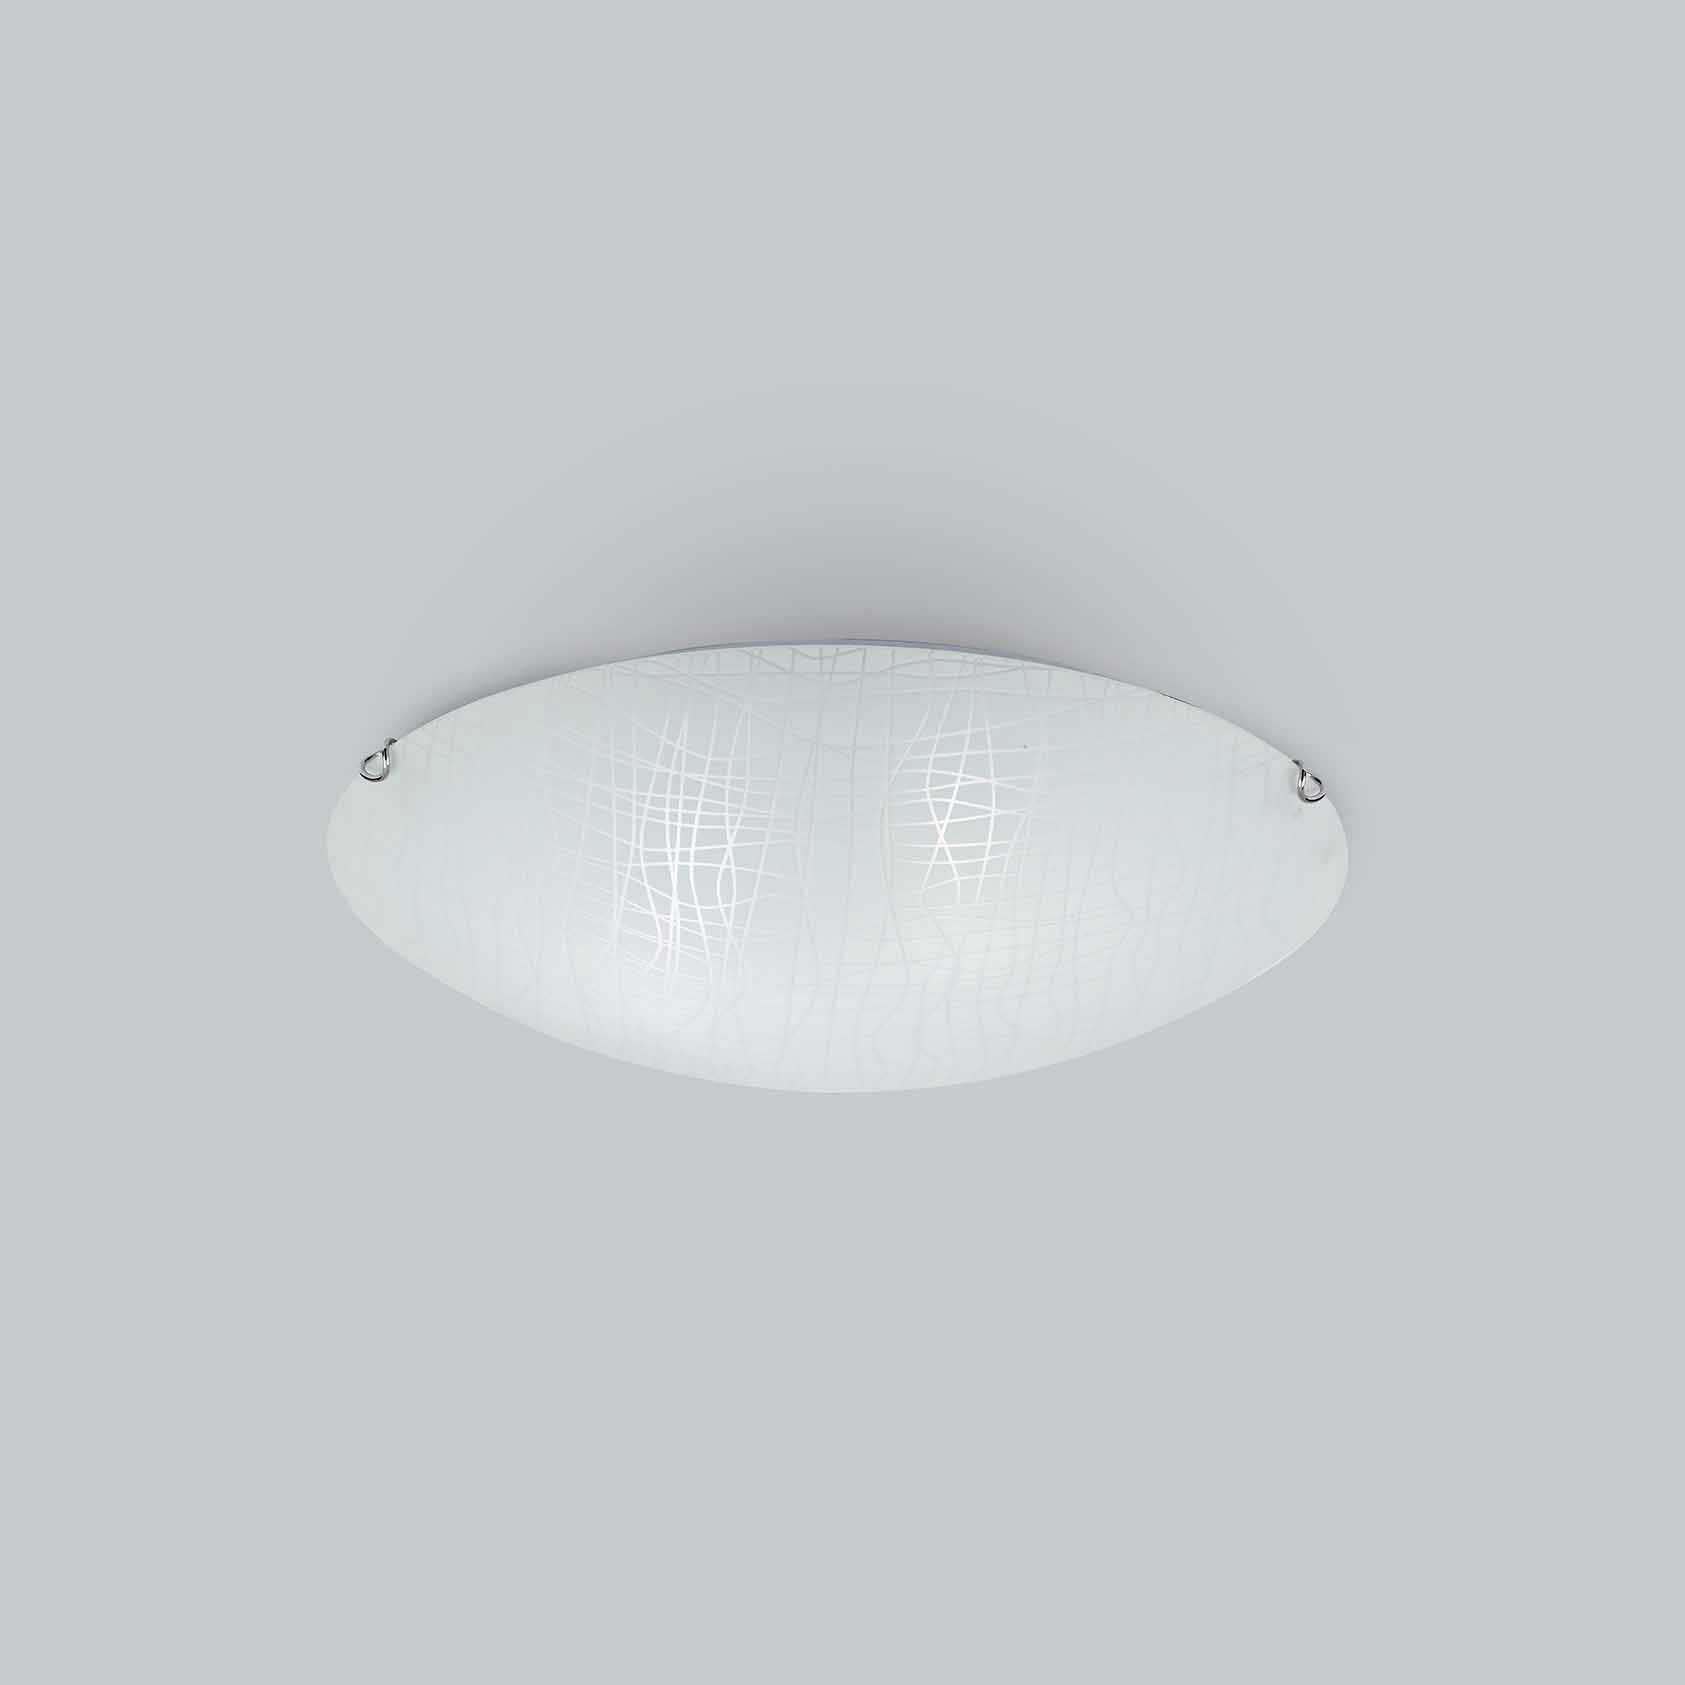 GD 0056 / PL50 Ceiling Lamp